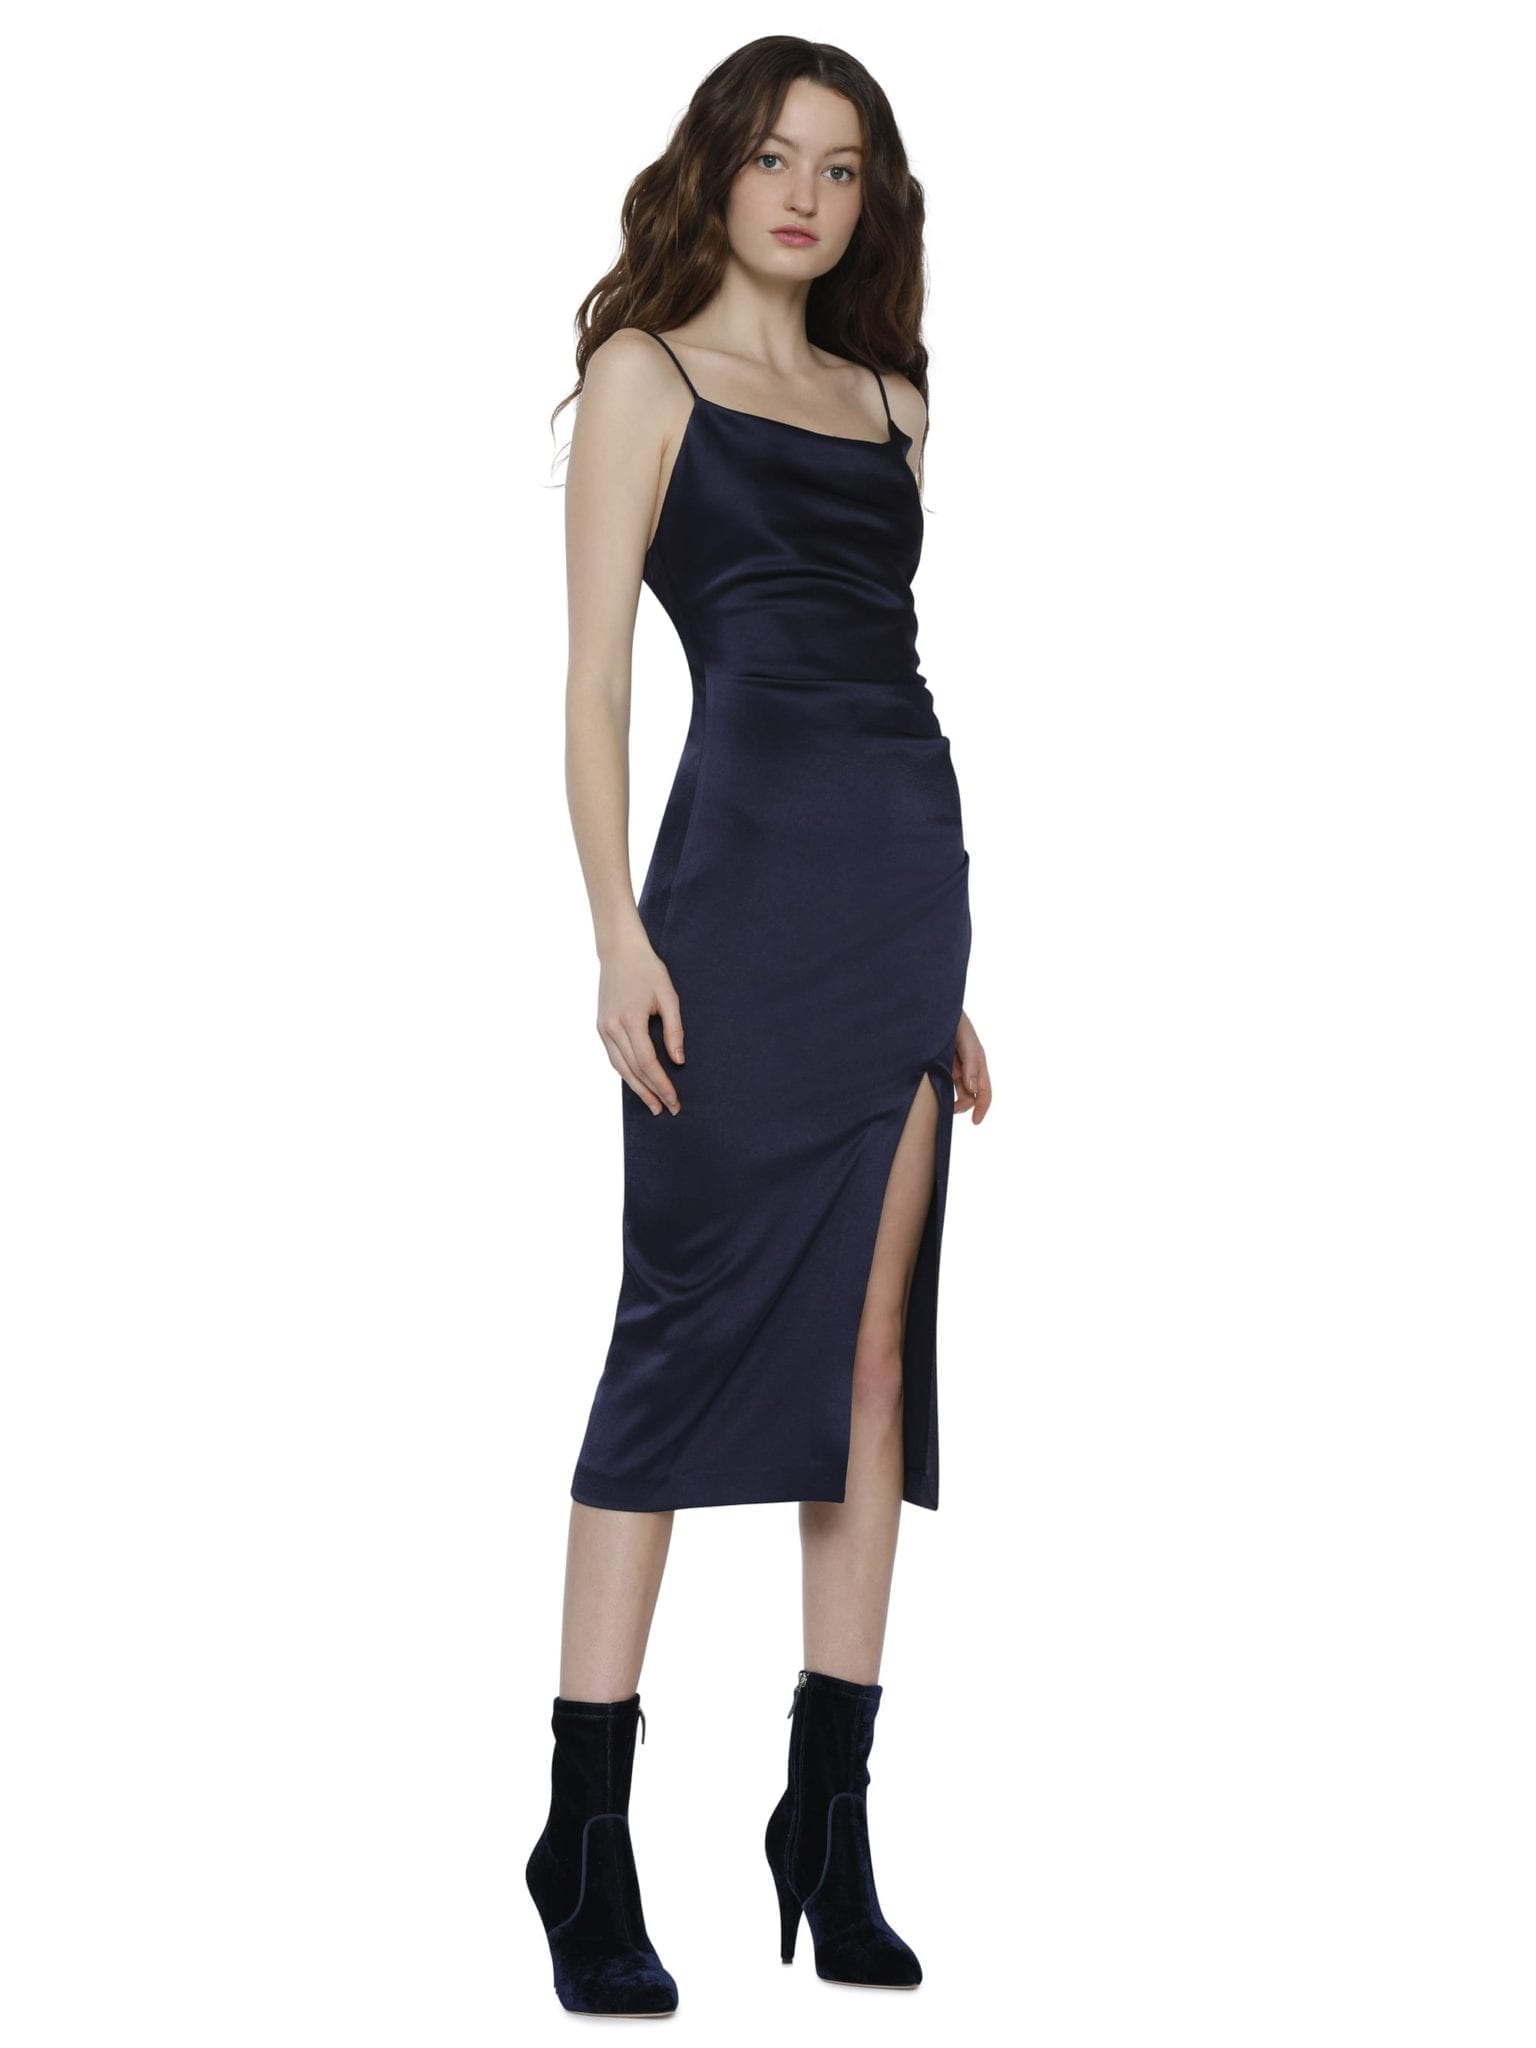 ALICE AND OLIVIA Dion Ruched Midi Slip Navy Dress